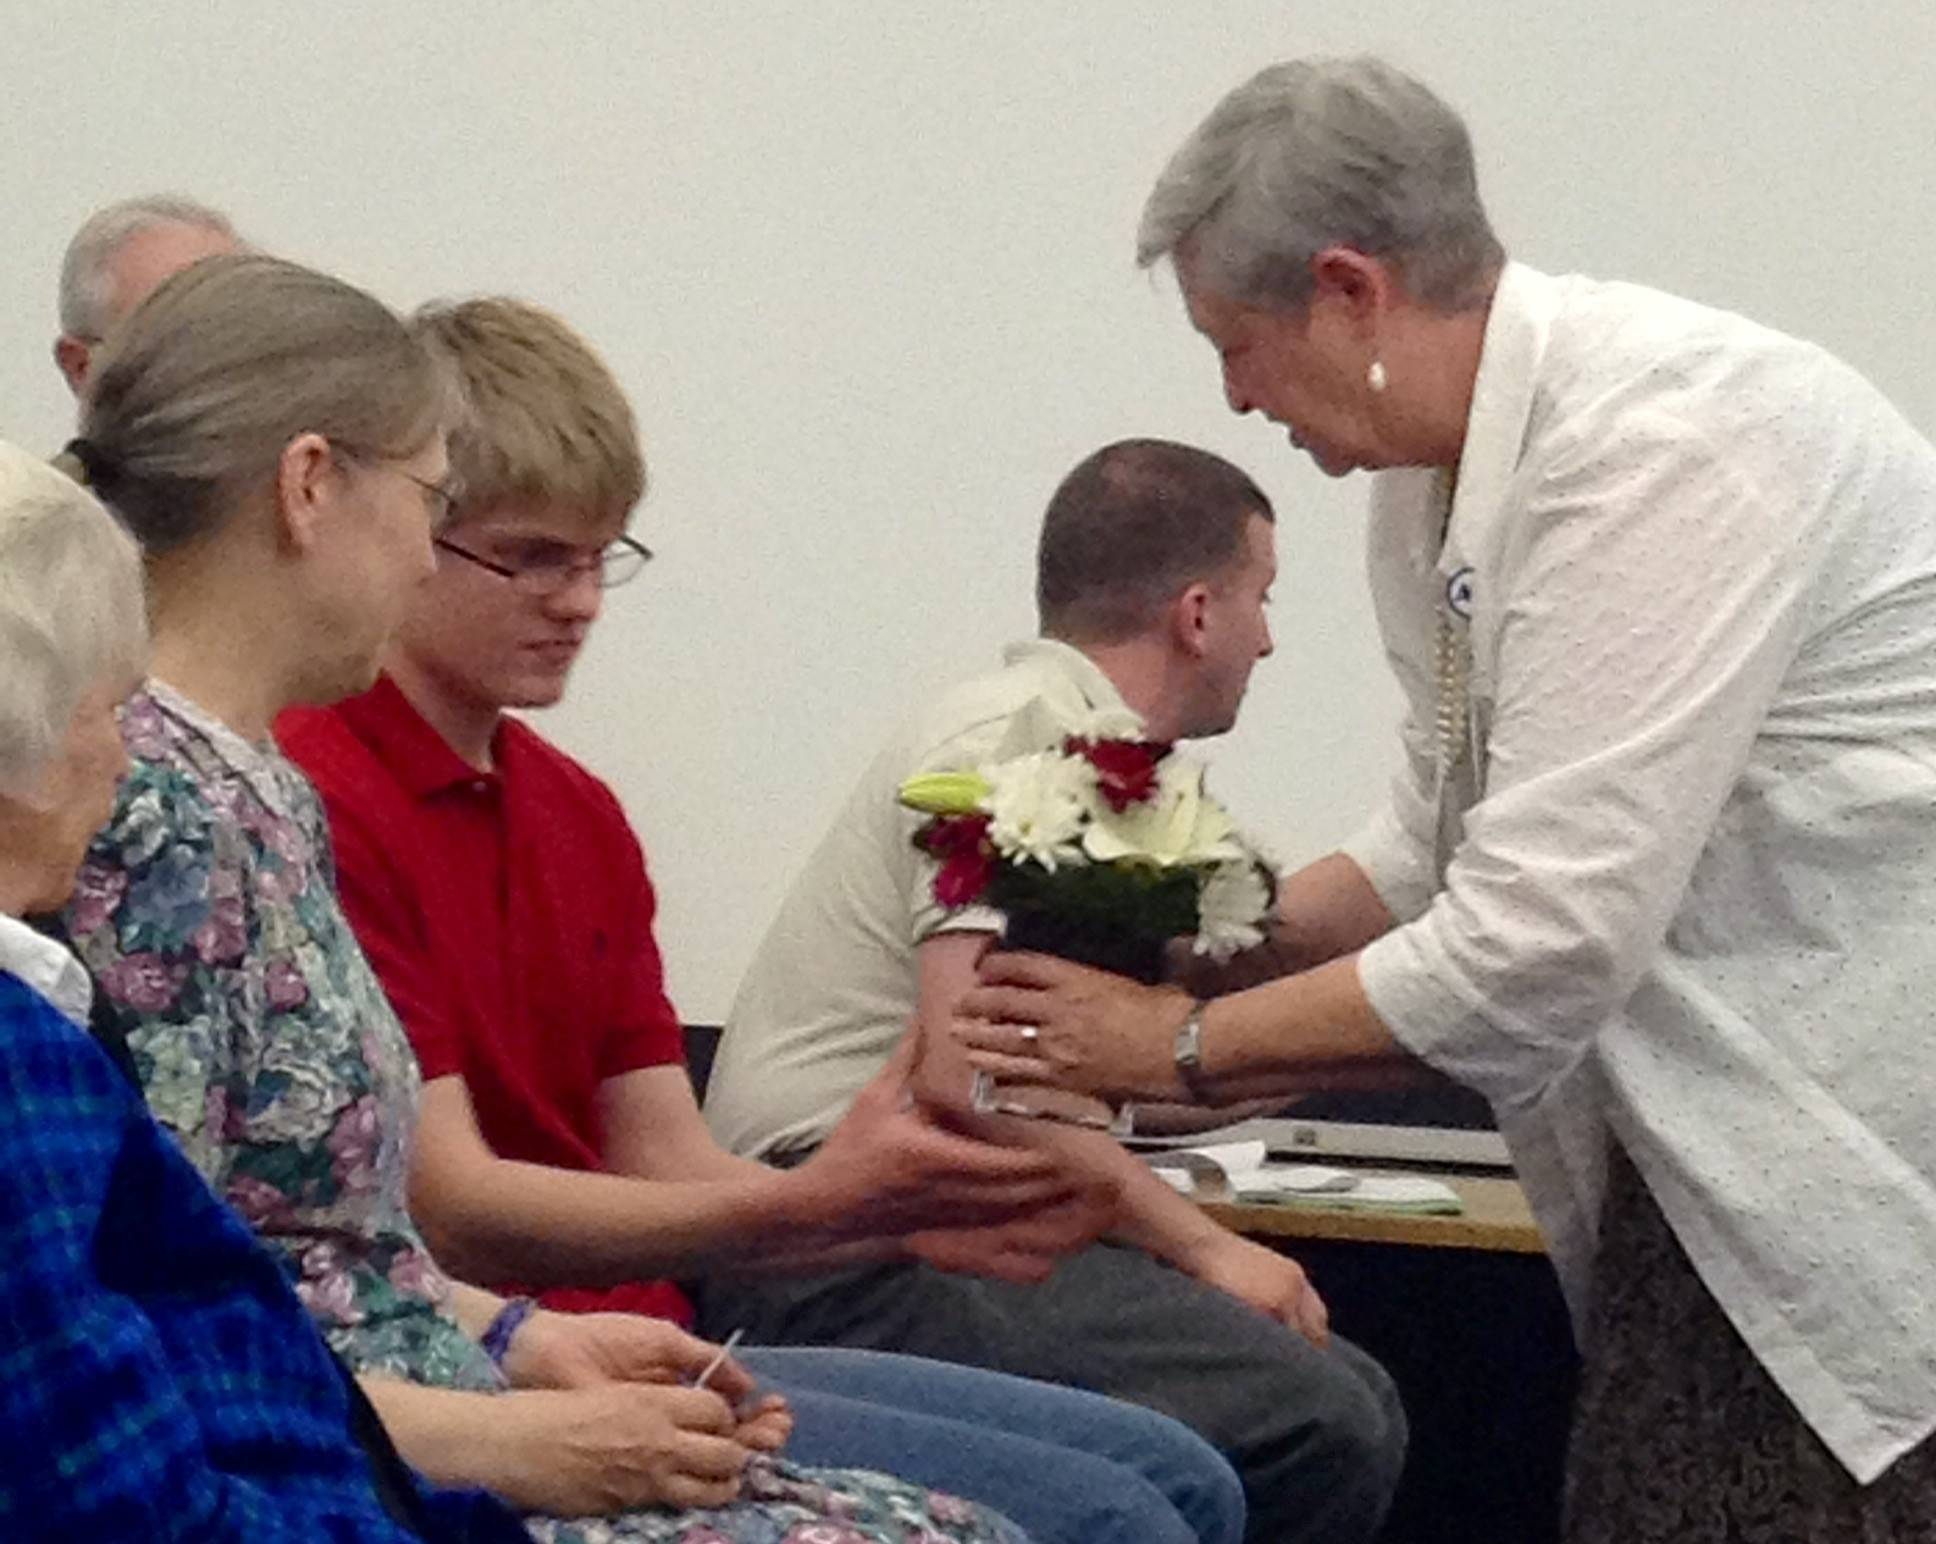 District 25 Superintendent Sarah Jerome presents flowers and the name card for board member Phil Crusius' seat to his wife, Patty, and son, Daniel, at Thursday's meeting. Crusius died of cancer earlier this month.